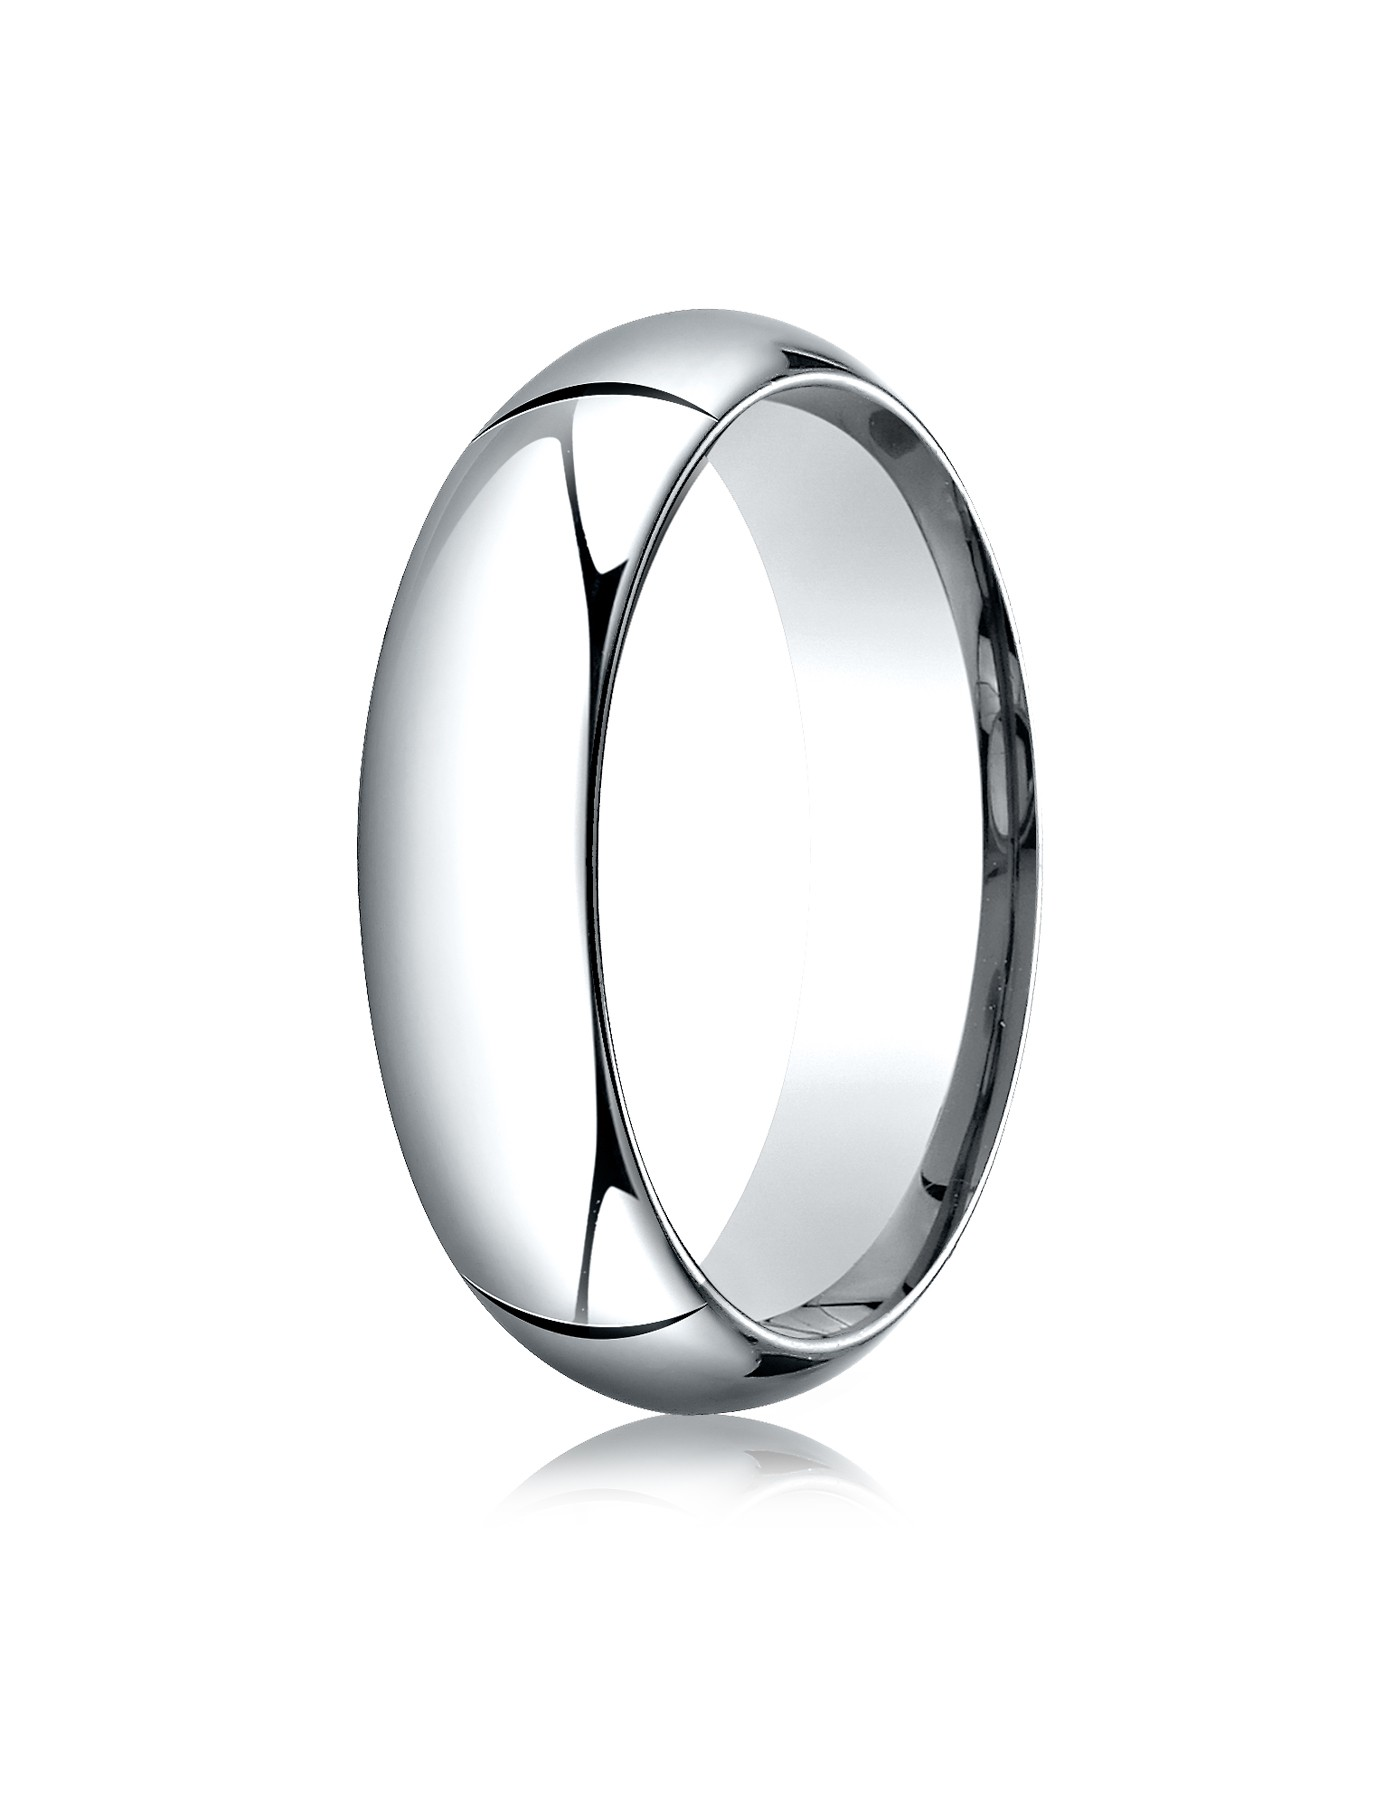 14k White Gold 6mm High Dome Comfort-fit Ring